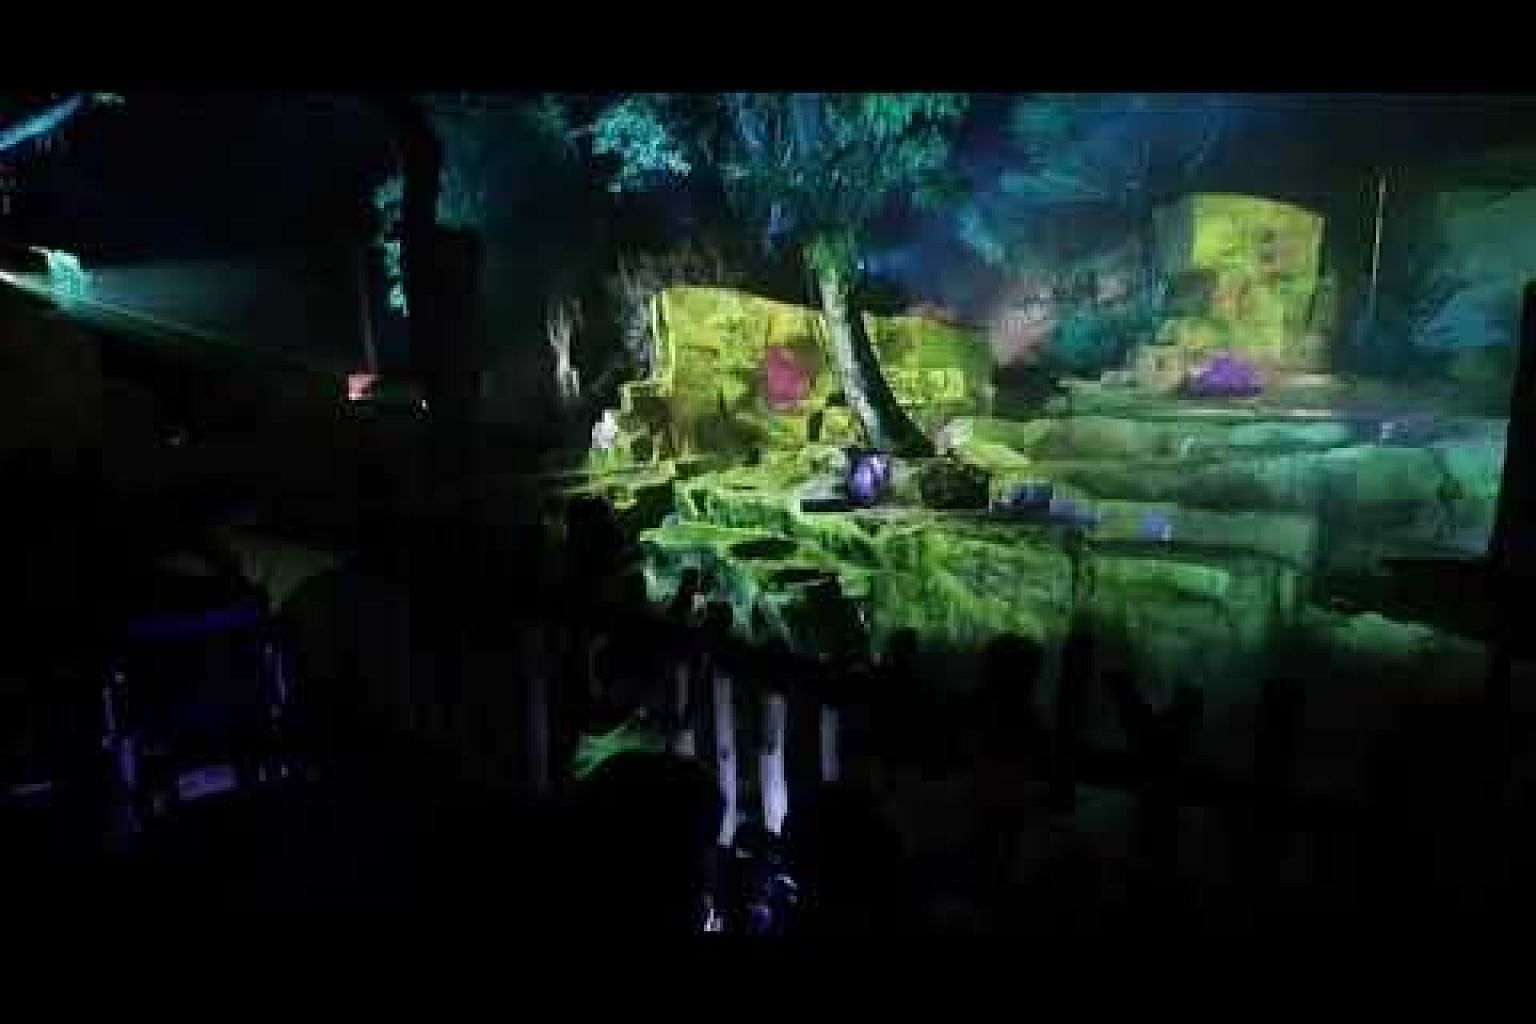 Visitors are treated to a multimedia experience at Rainforest Lumina